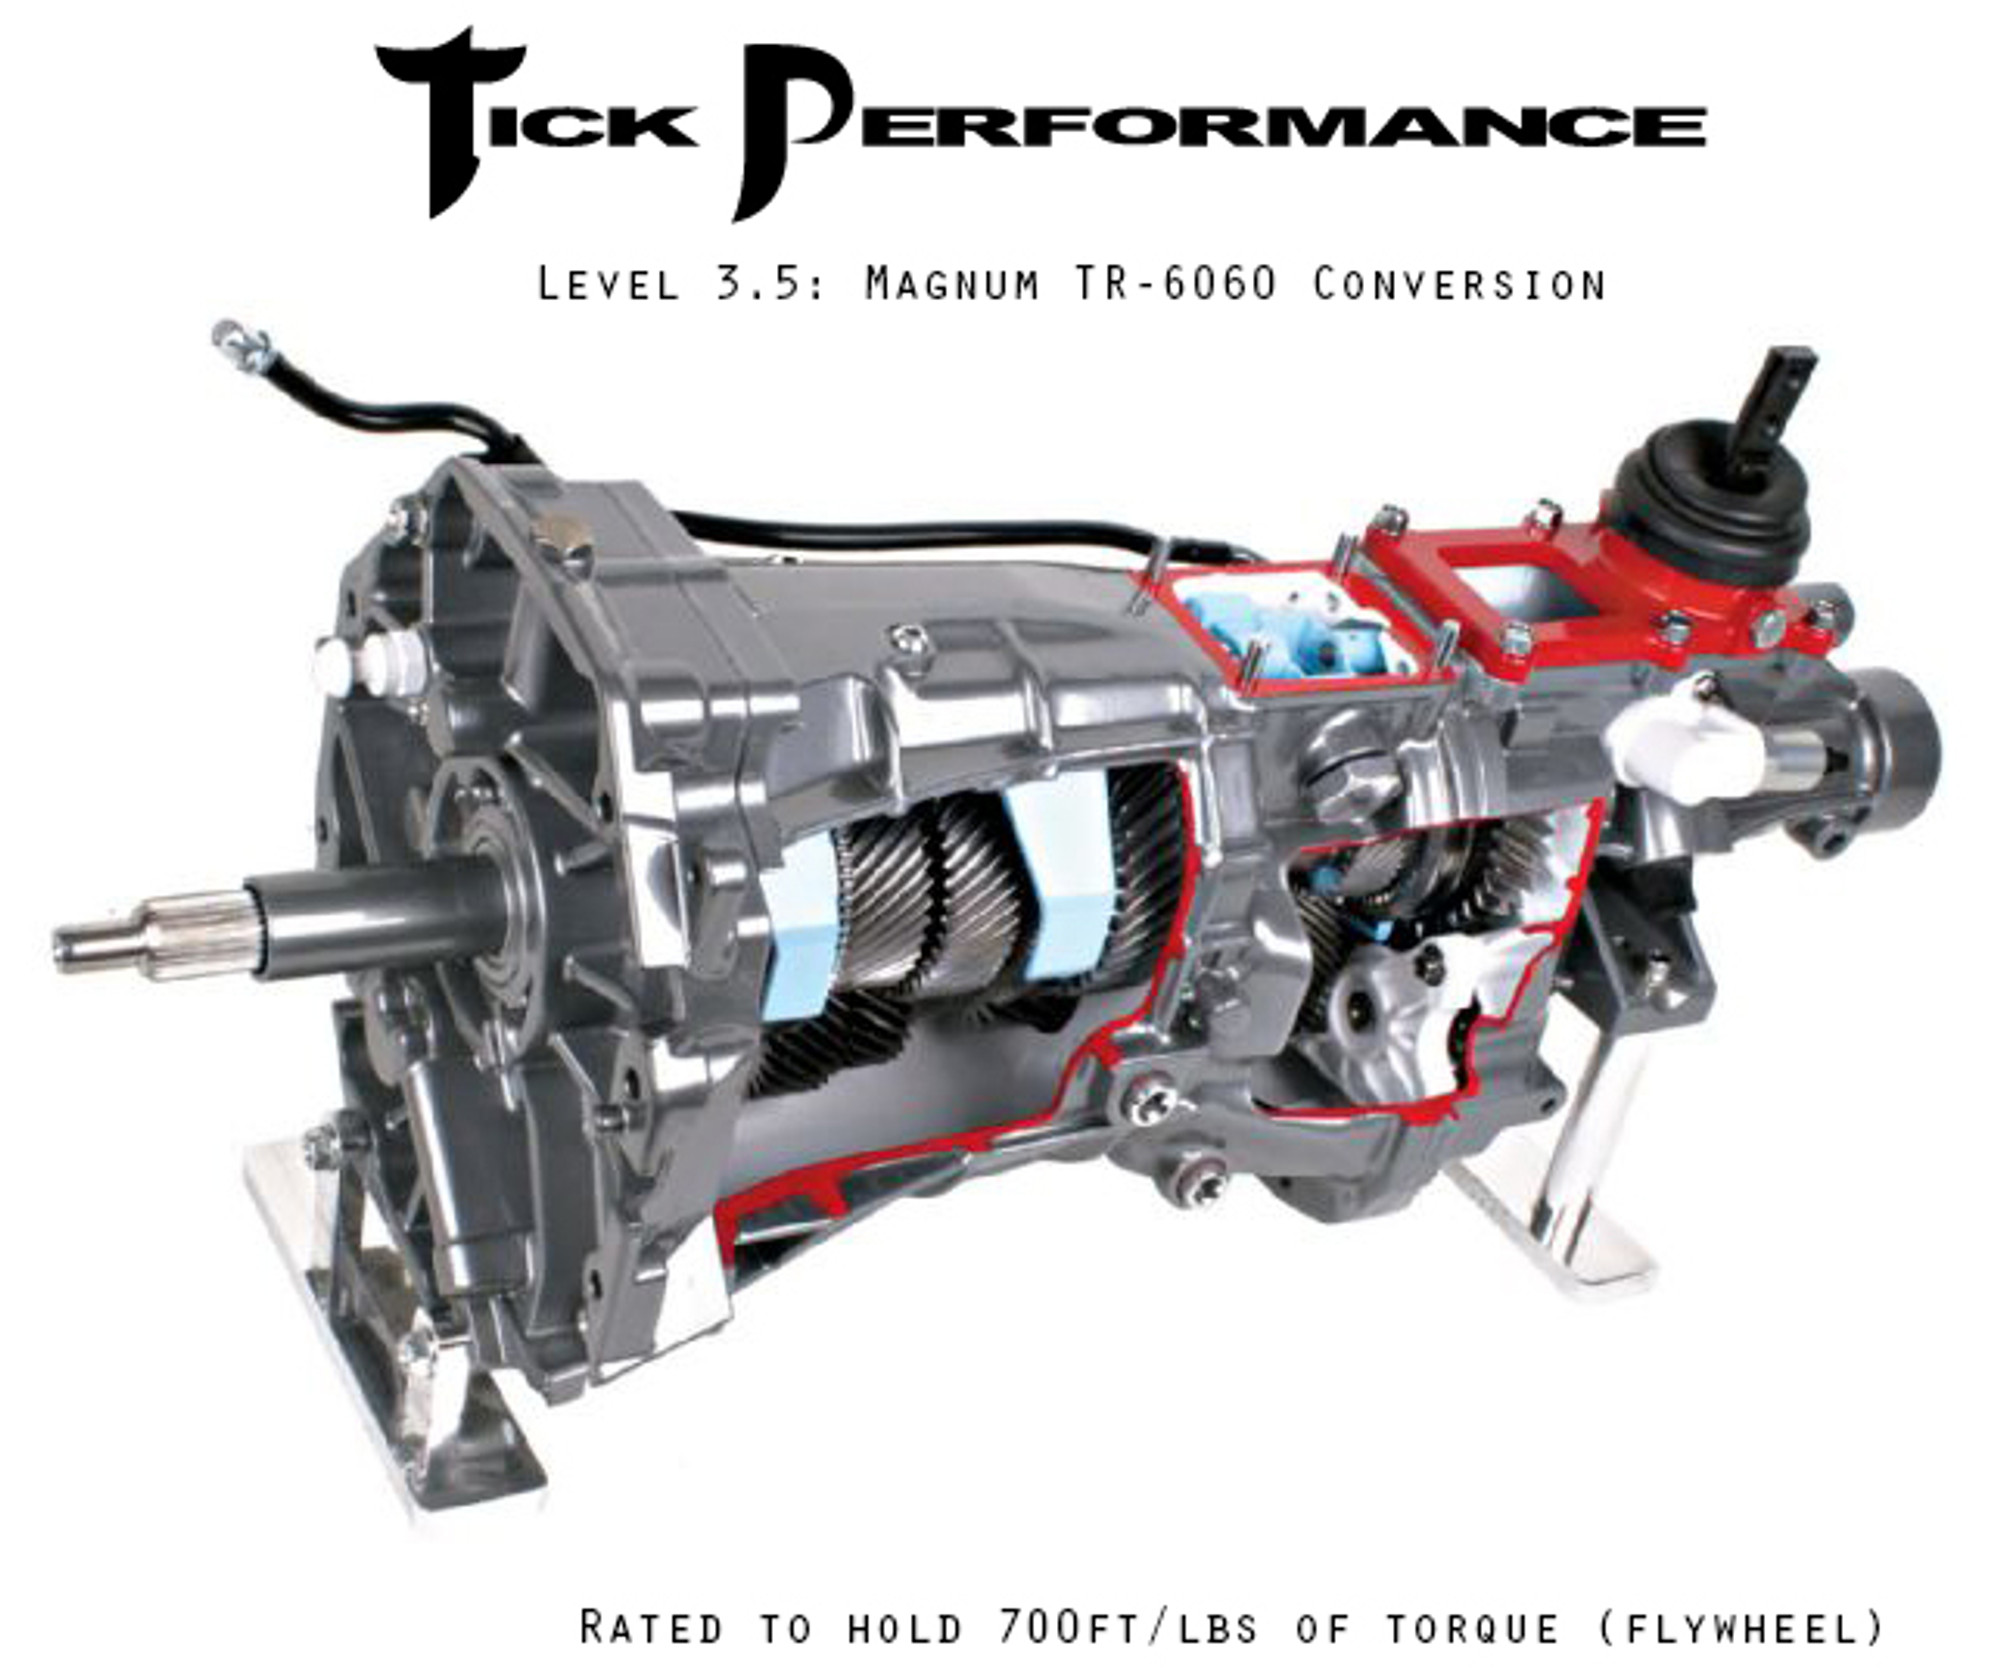 Tick Performance Level 3 5 Magnum TR-6060 Conversion (700FWTQ) for 98-02  Camaro & Firebird